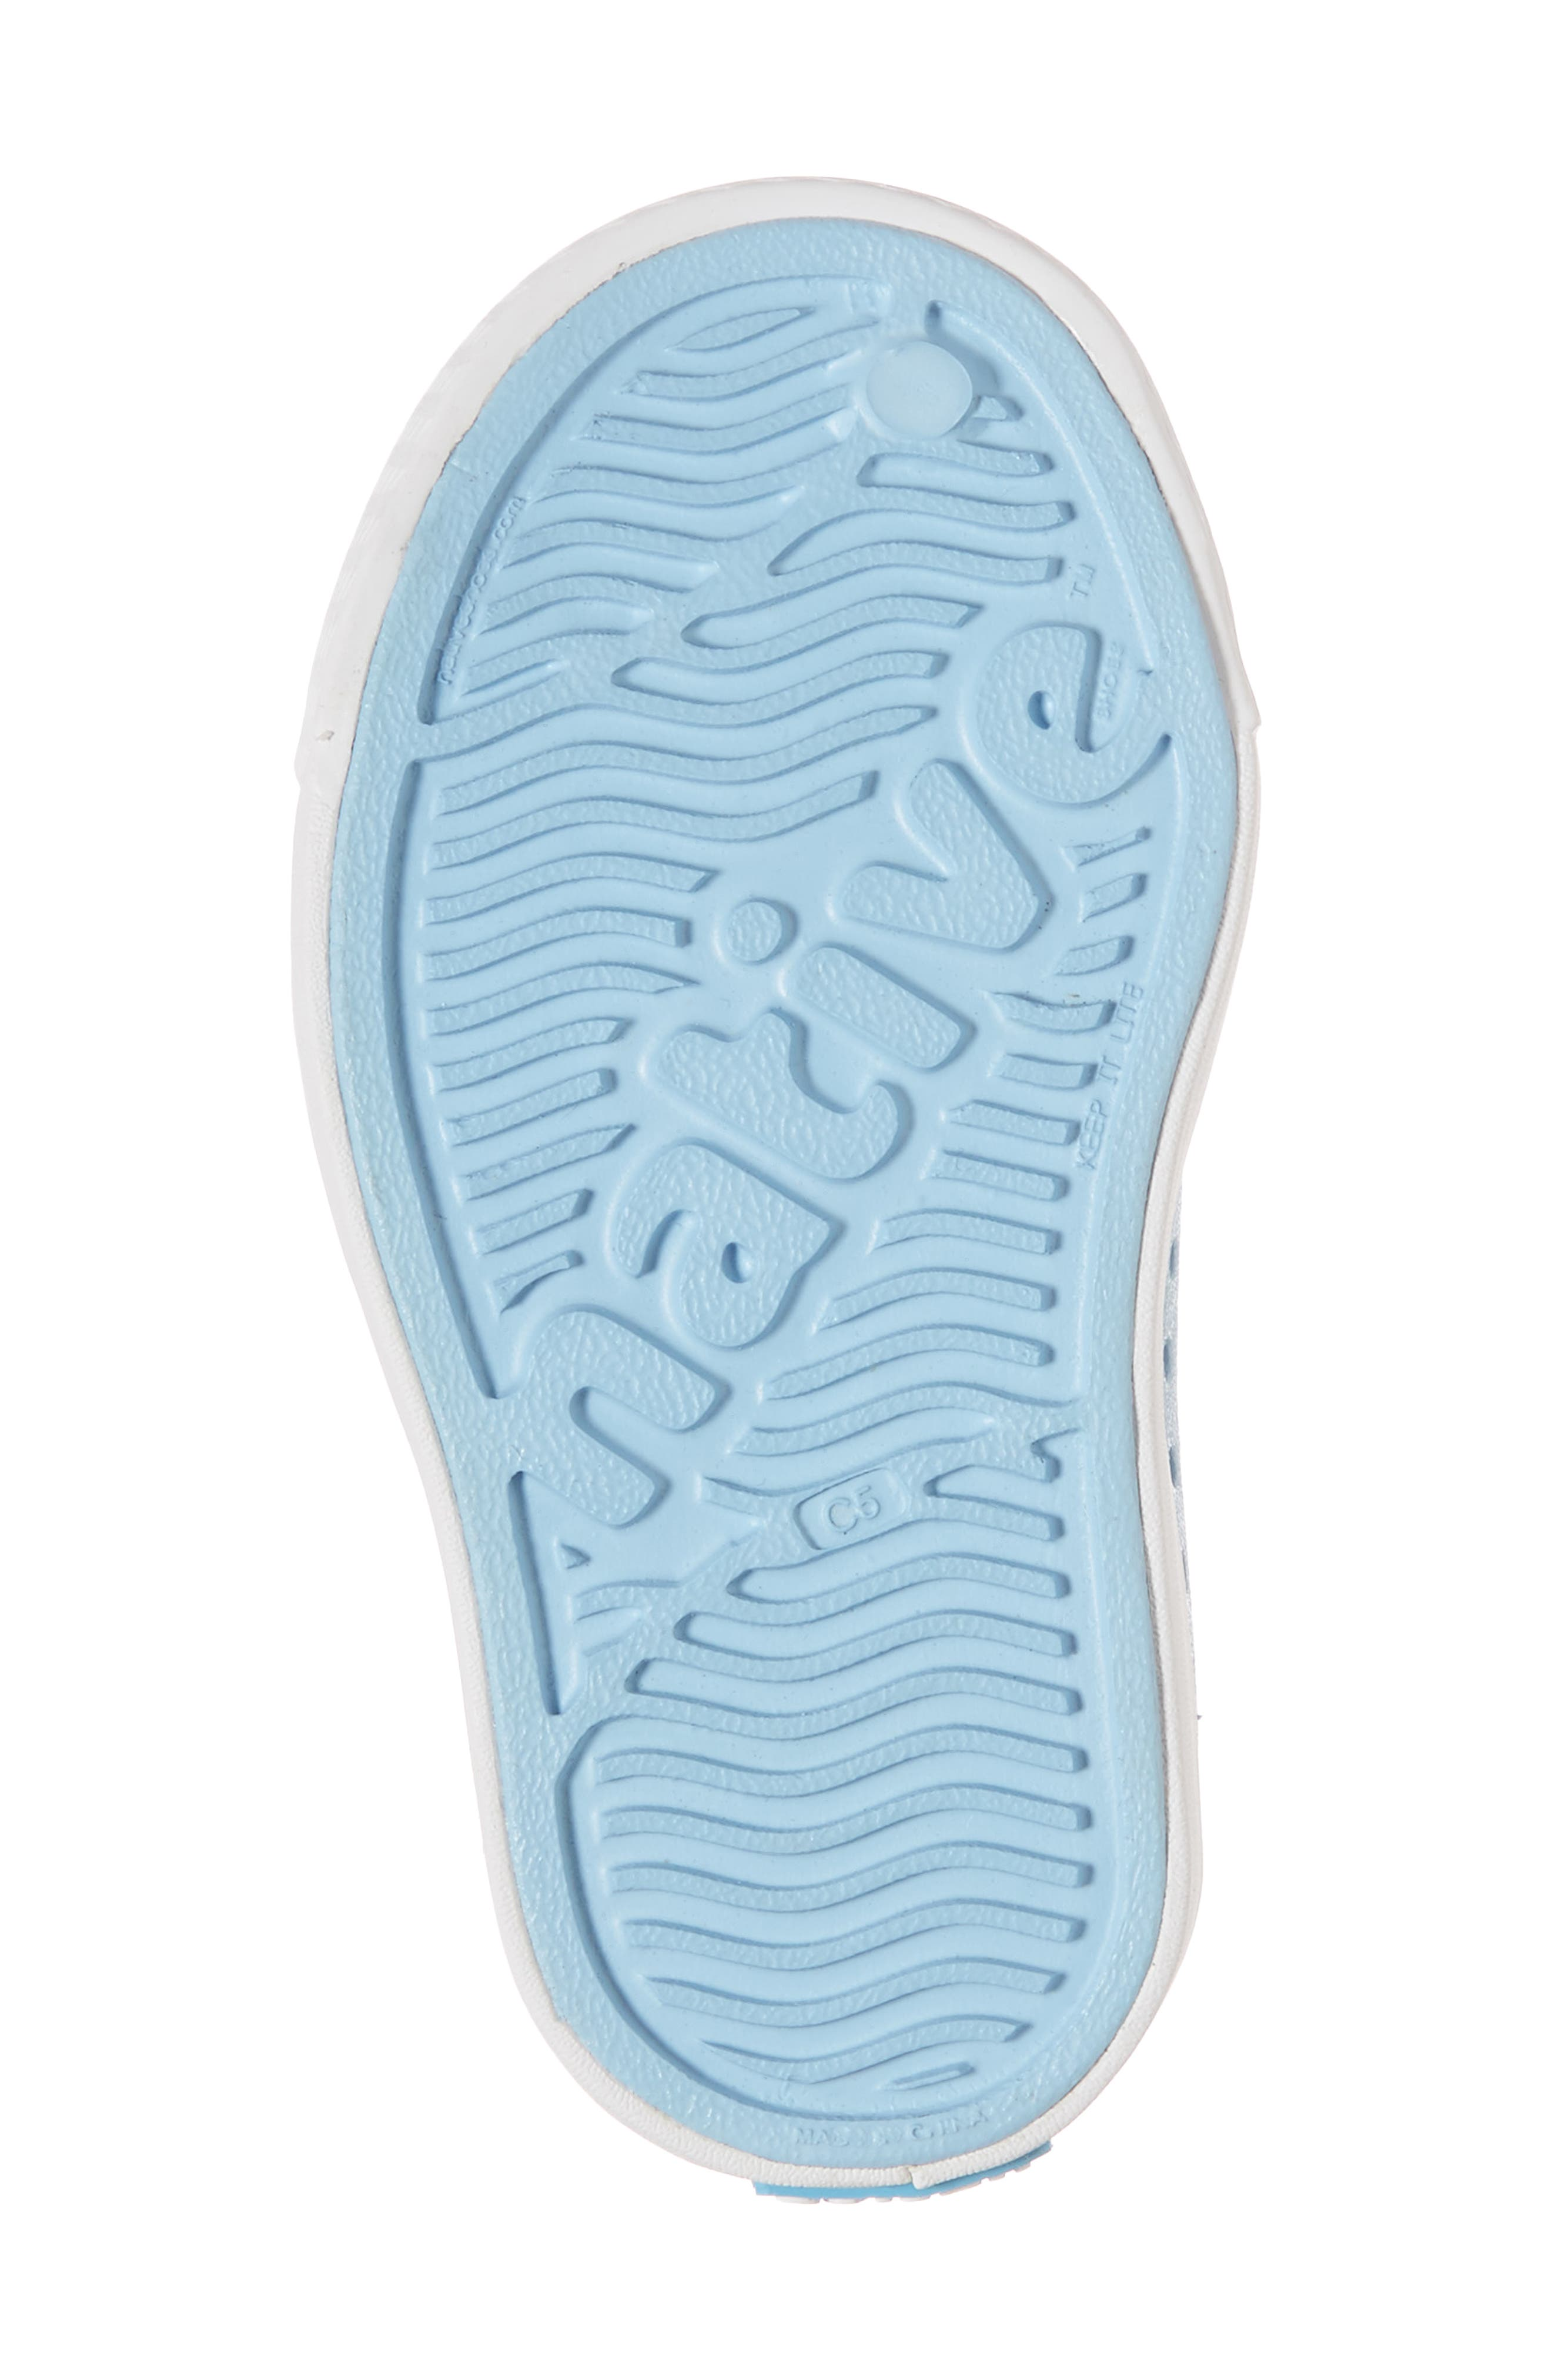 Juniper Perforated Mary Jane,                             Alternate thumbnail 6, color,                             Sky Blue/ White/ Galaxy